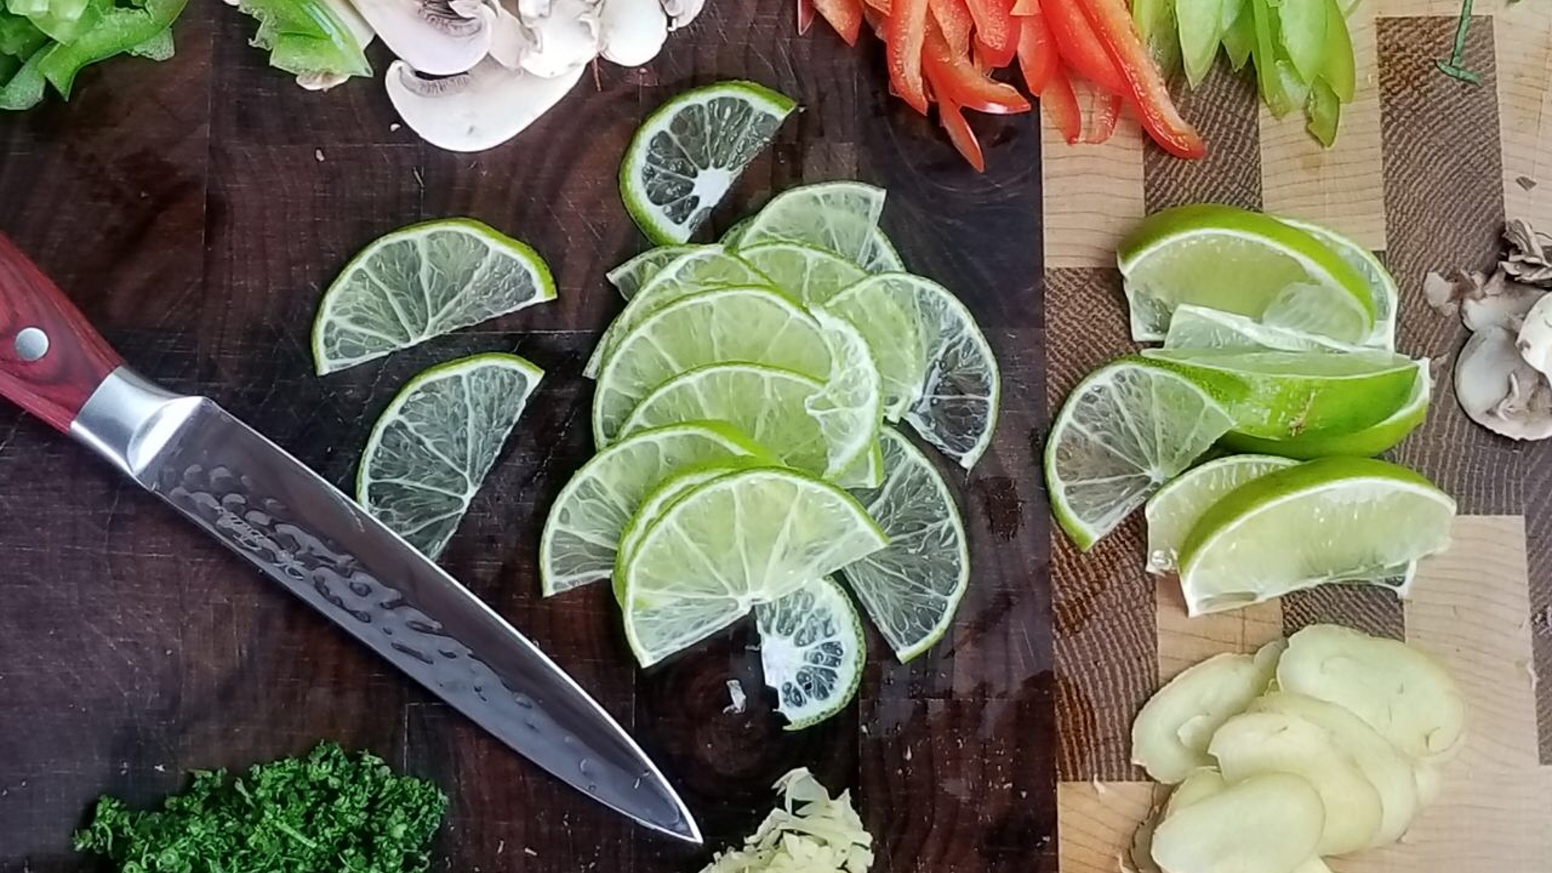 This high quality general-purpose handmade utility knife is a jack of all trades that excels at tackling everyday tasks in the kitchen.